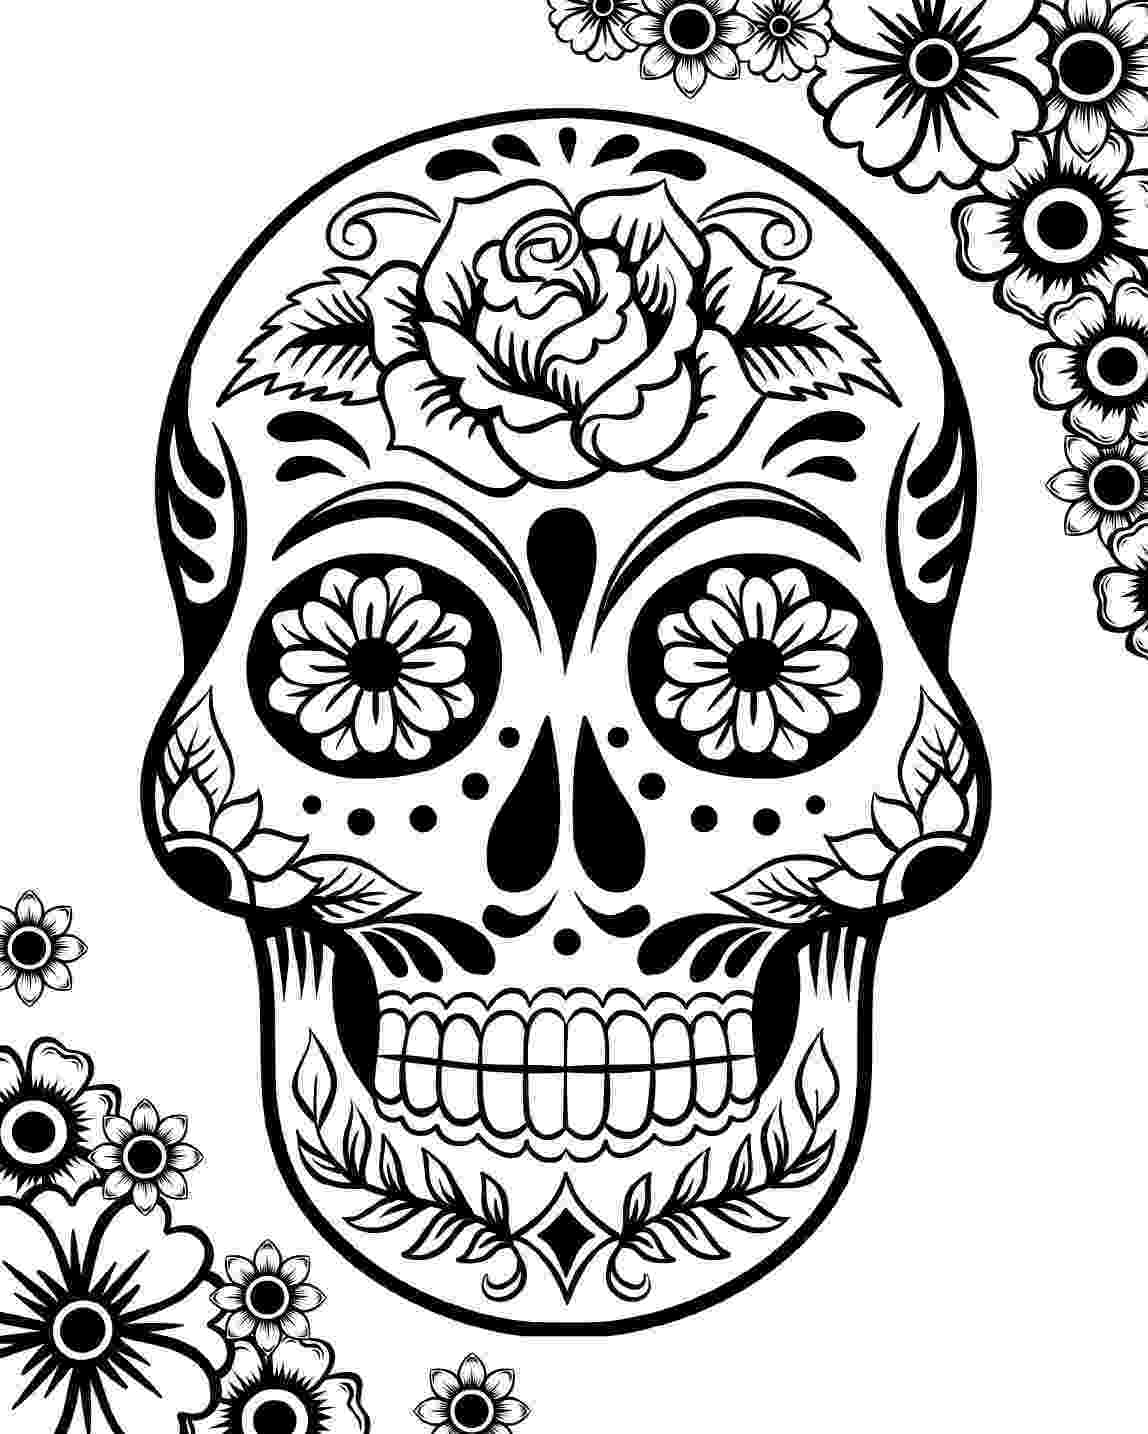 coloring pages for adults day of the dead free printable day of the dead coloring pages best dead adults of the coloring day for pages